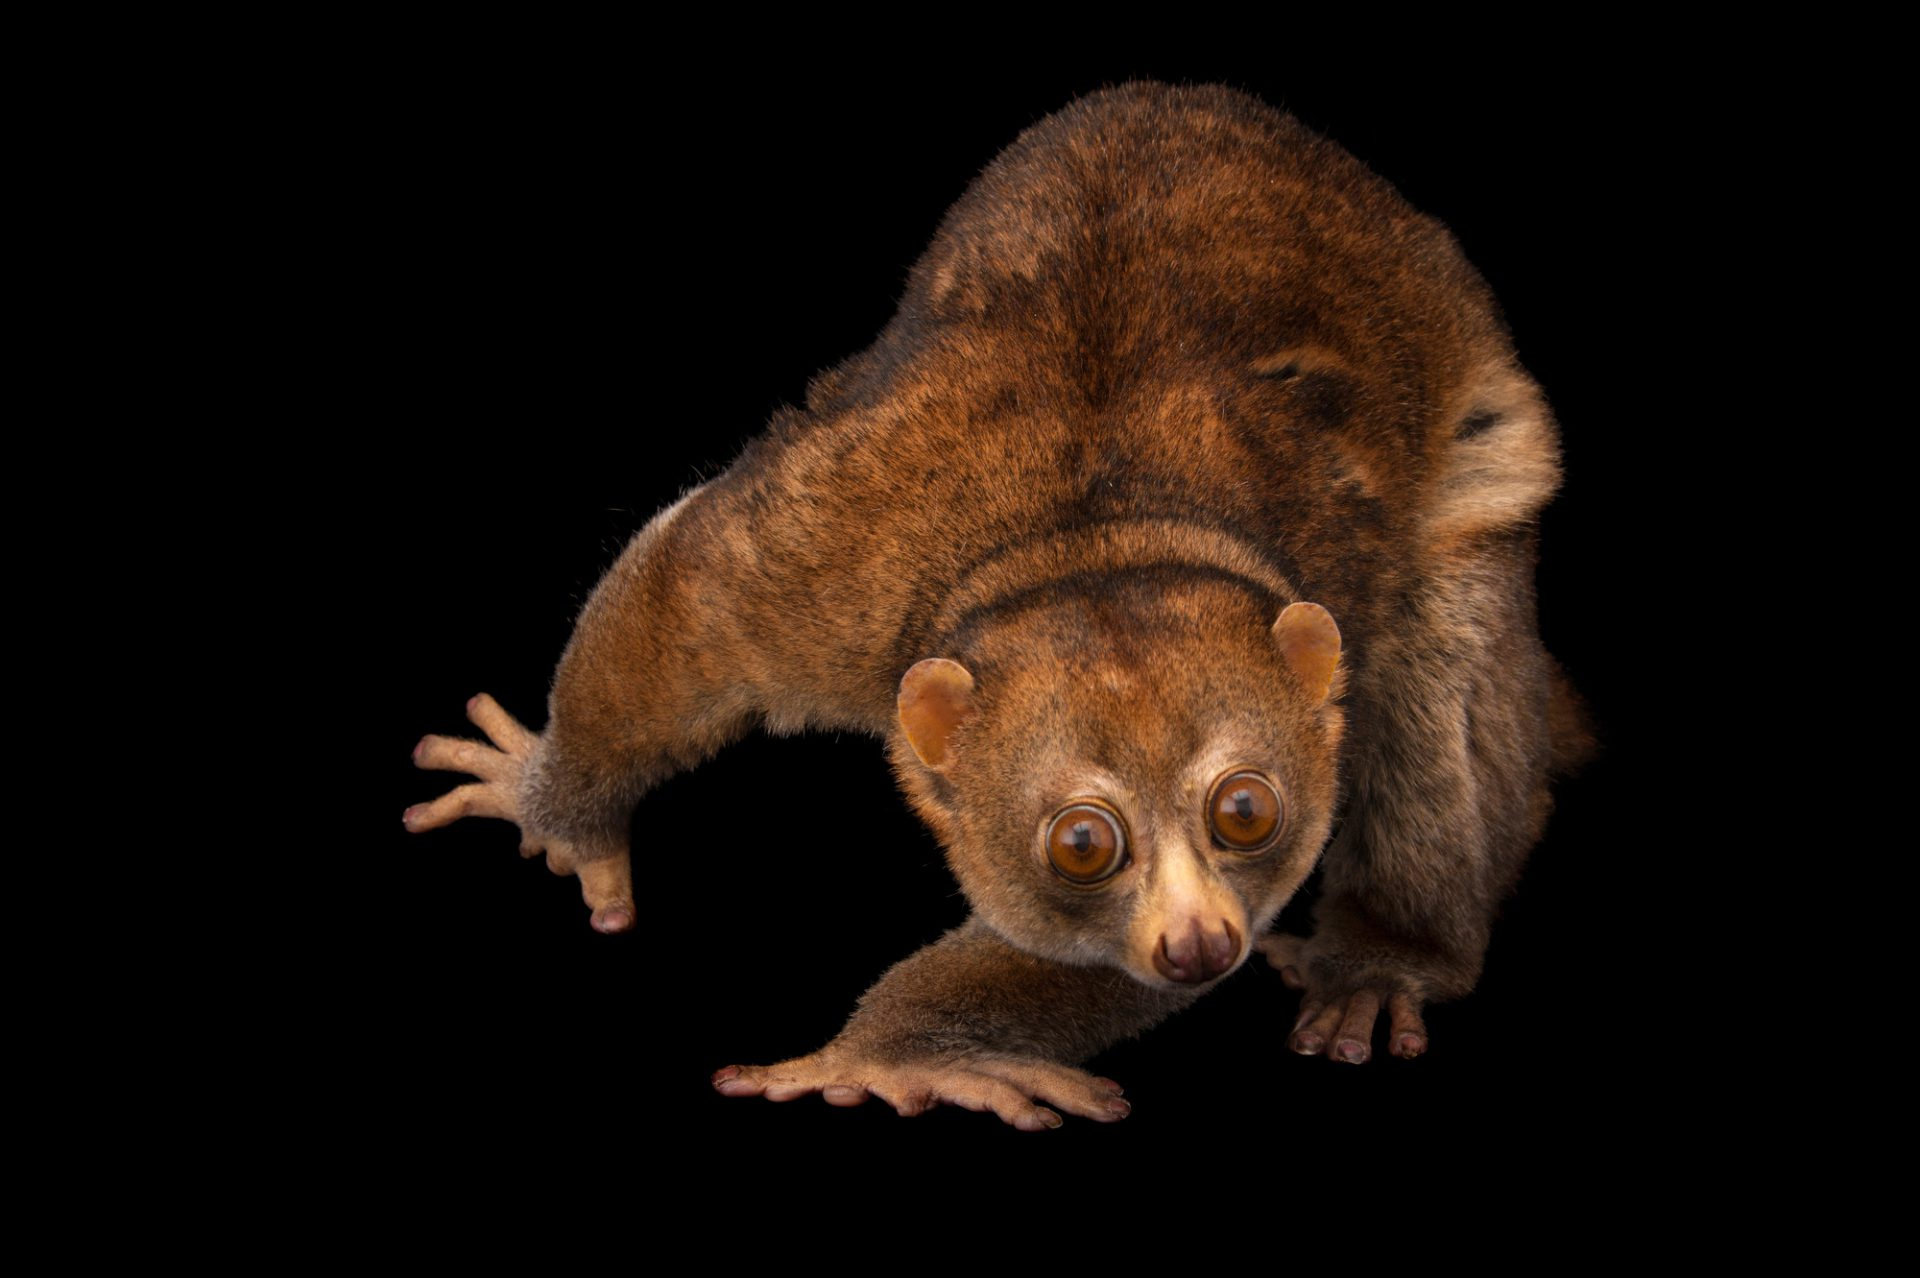 Picture of a Potto (Perodicticus potto) at the Cleveland Metroparks Zoo.